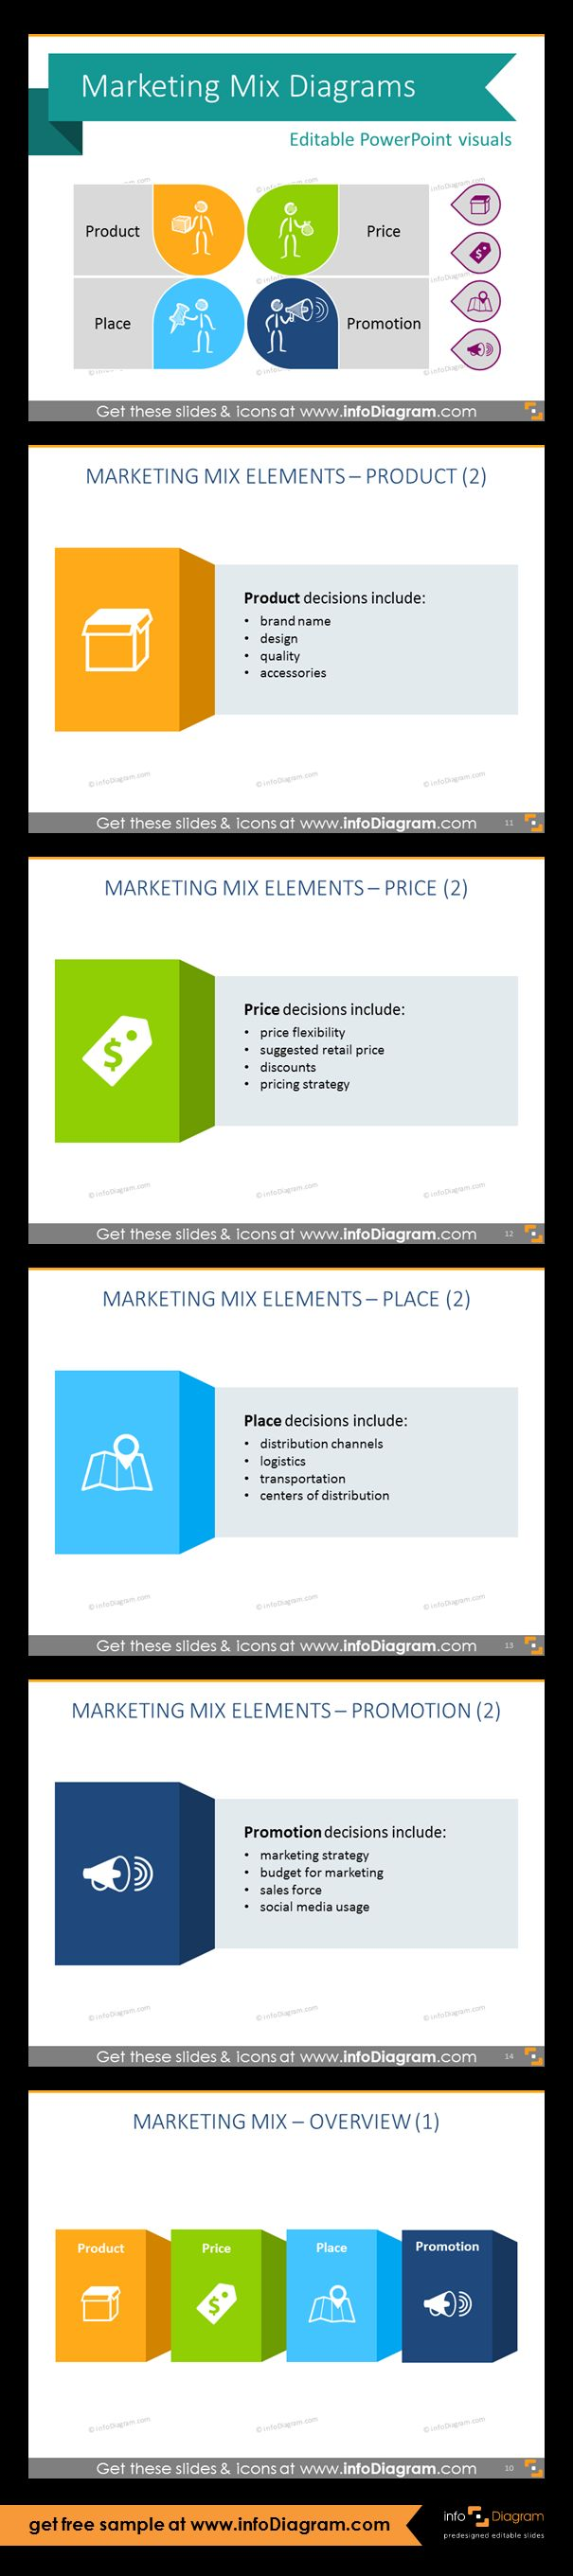 Collection of Marketing Mix framework template and icons as pre-designed PowerPoint slides. Detailed characteristic of each element with icons: product, price, place, promotion. 4P of marketing overview. Presentation template suitable for marketing and strategy planning presentations.